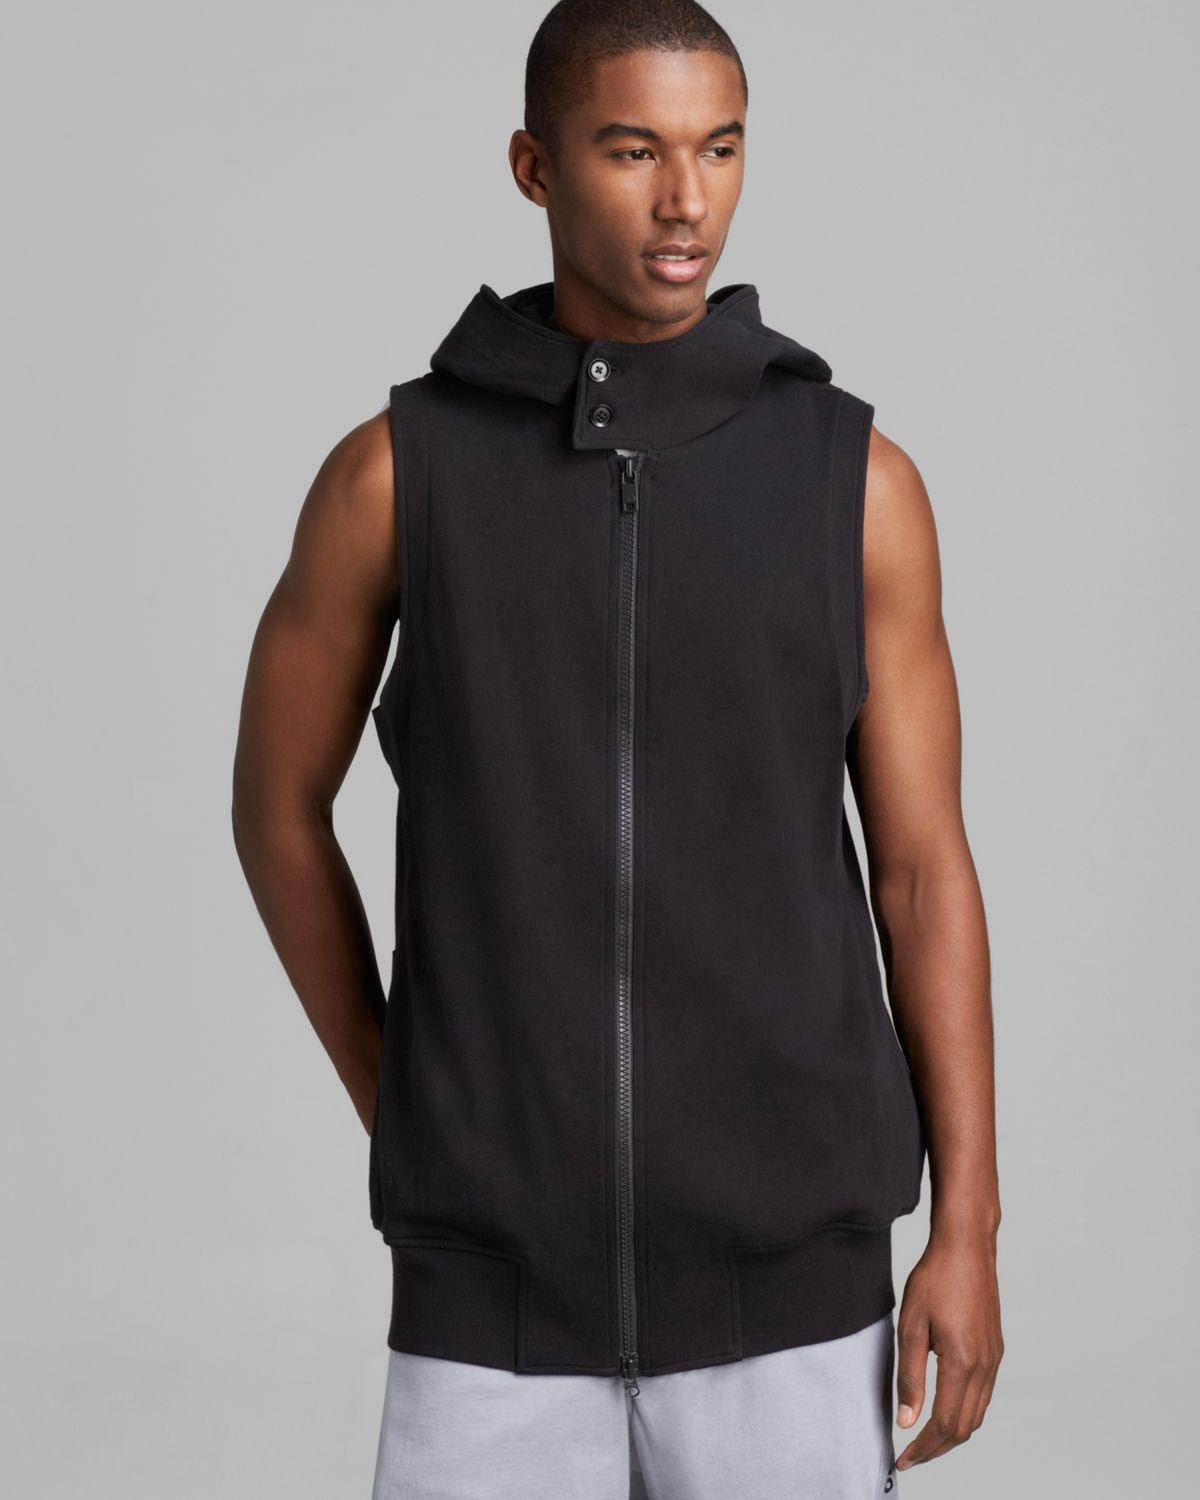 Y 3 cycle jacket black